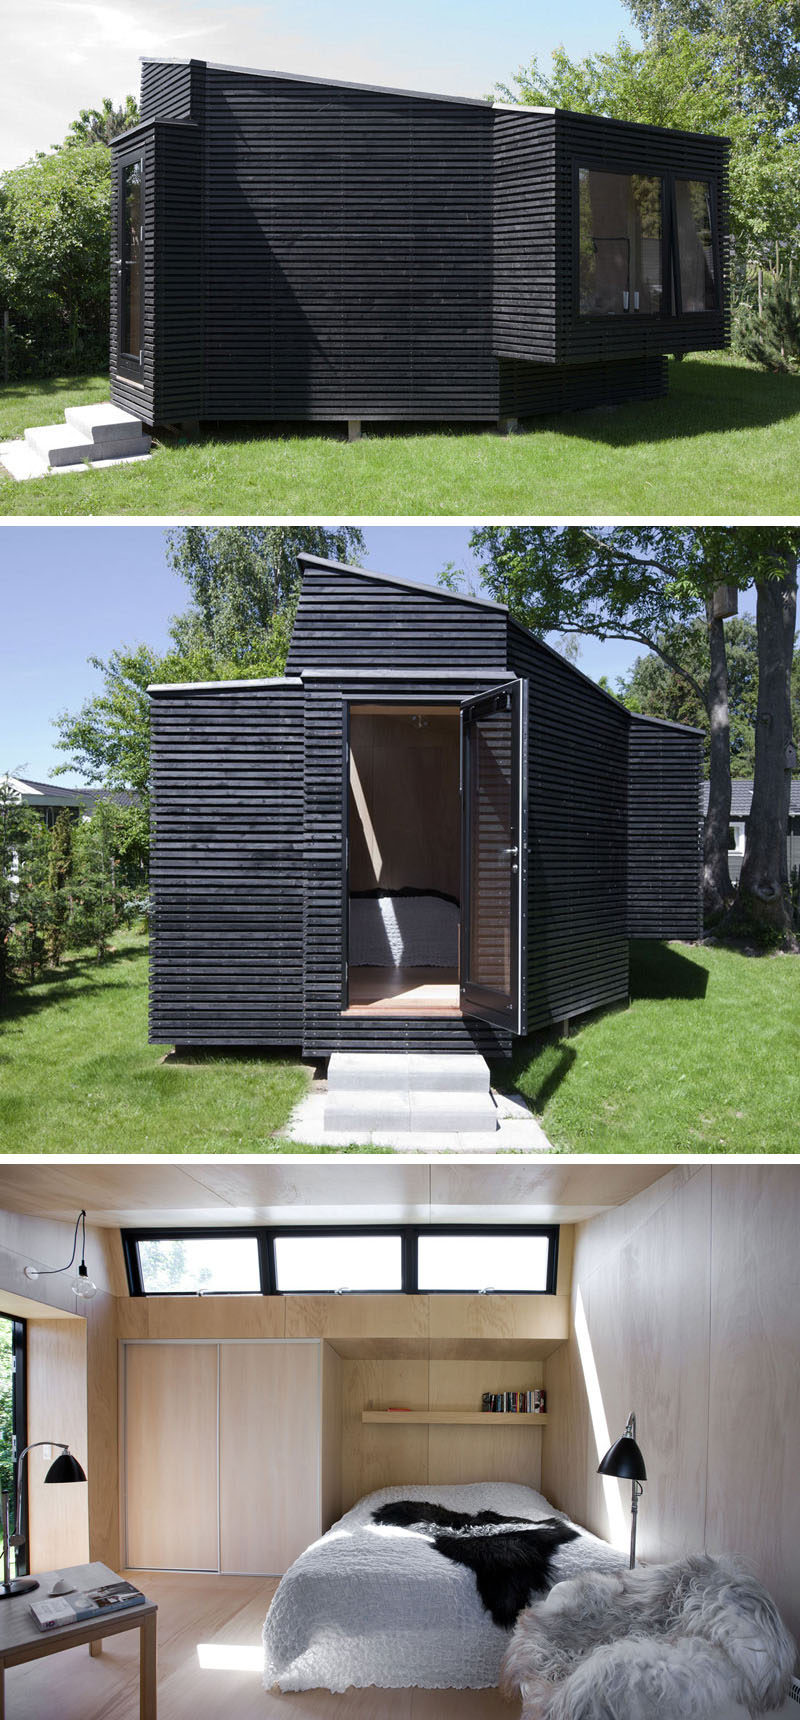 Clad in black timber, this backyard guest house has plenty of windows to keep it bright.